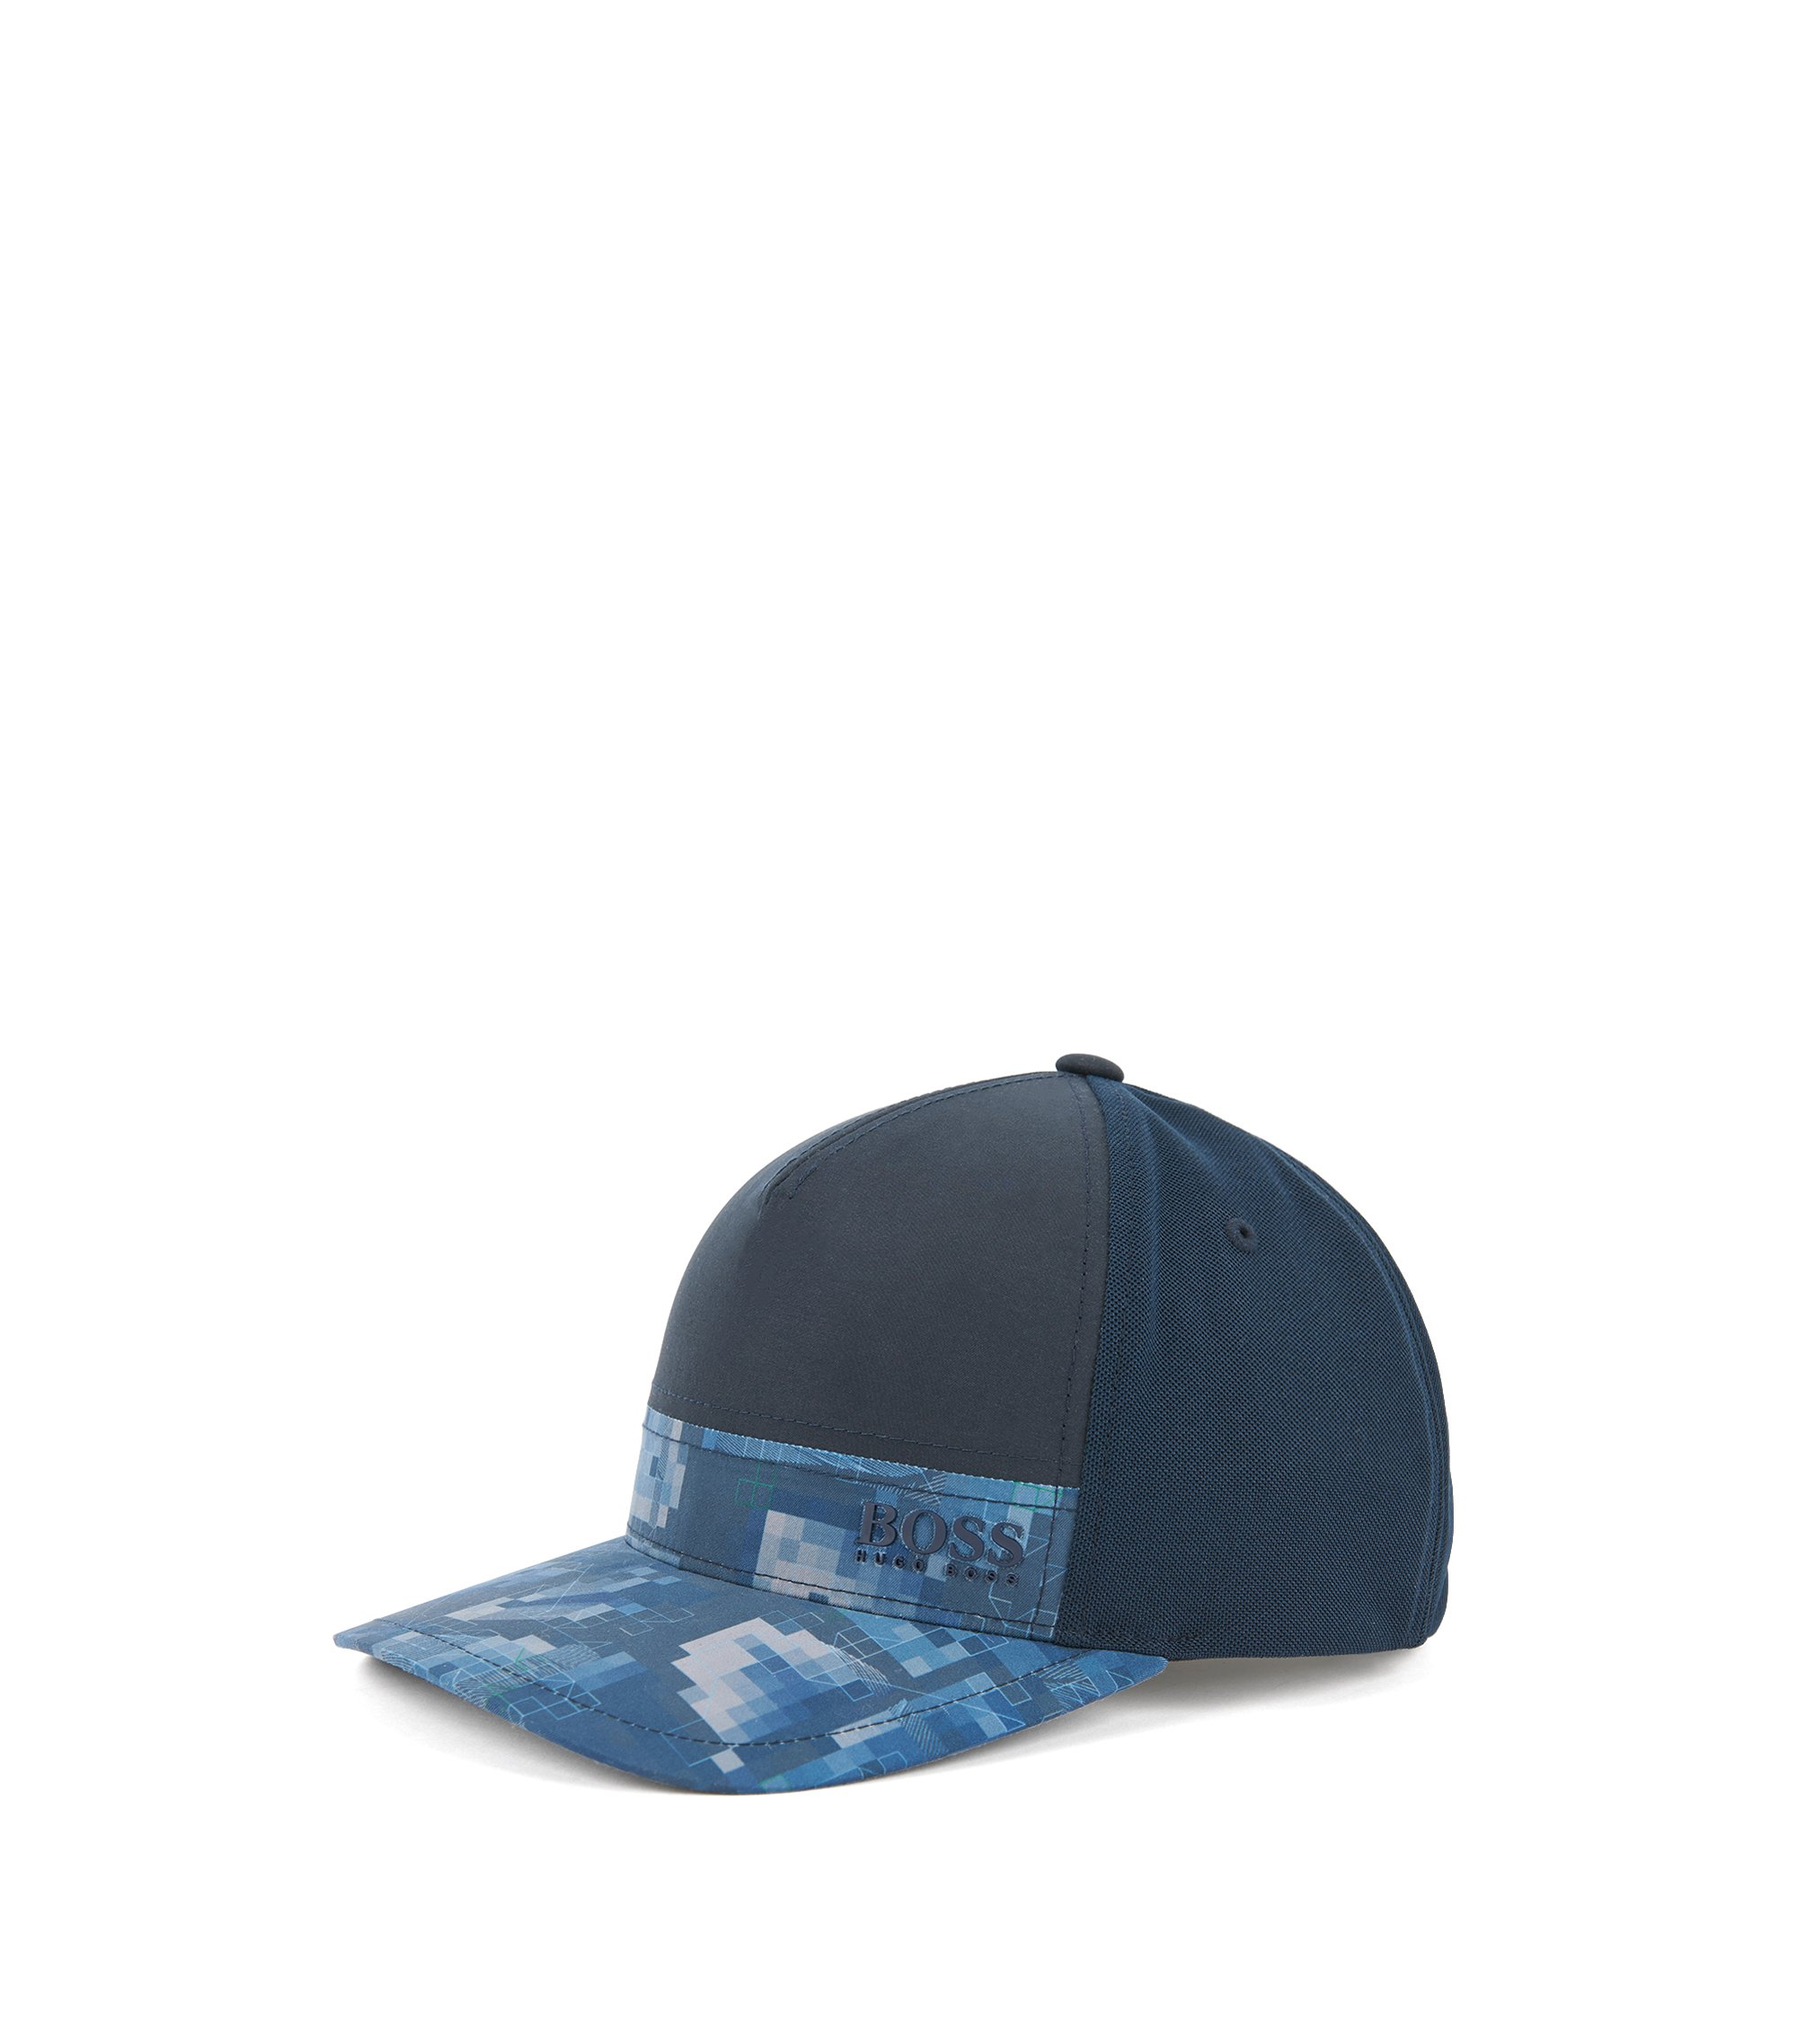 Digi-Camo Colorblock Baseball Cap | Printcap, Dark Blue